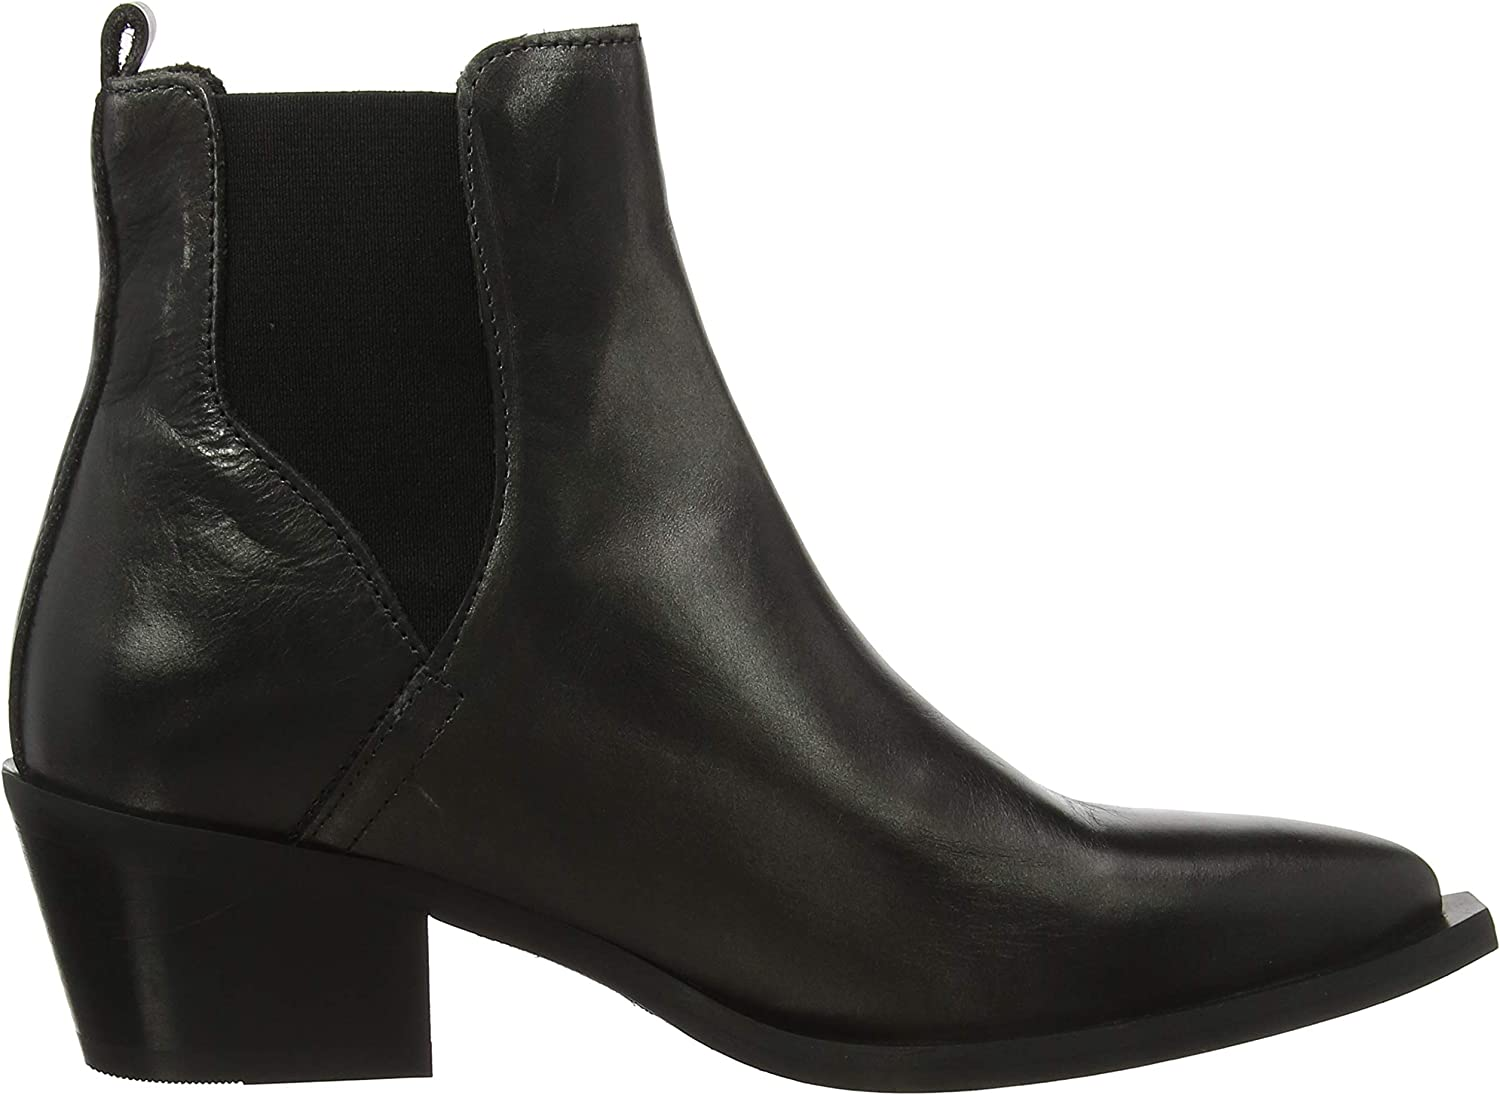 Fly London Inep496fly, Botines para Mujer Gris Humo 004 1SrE3